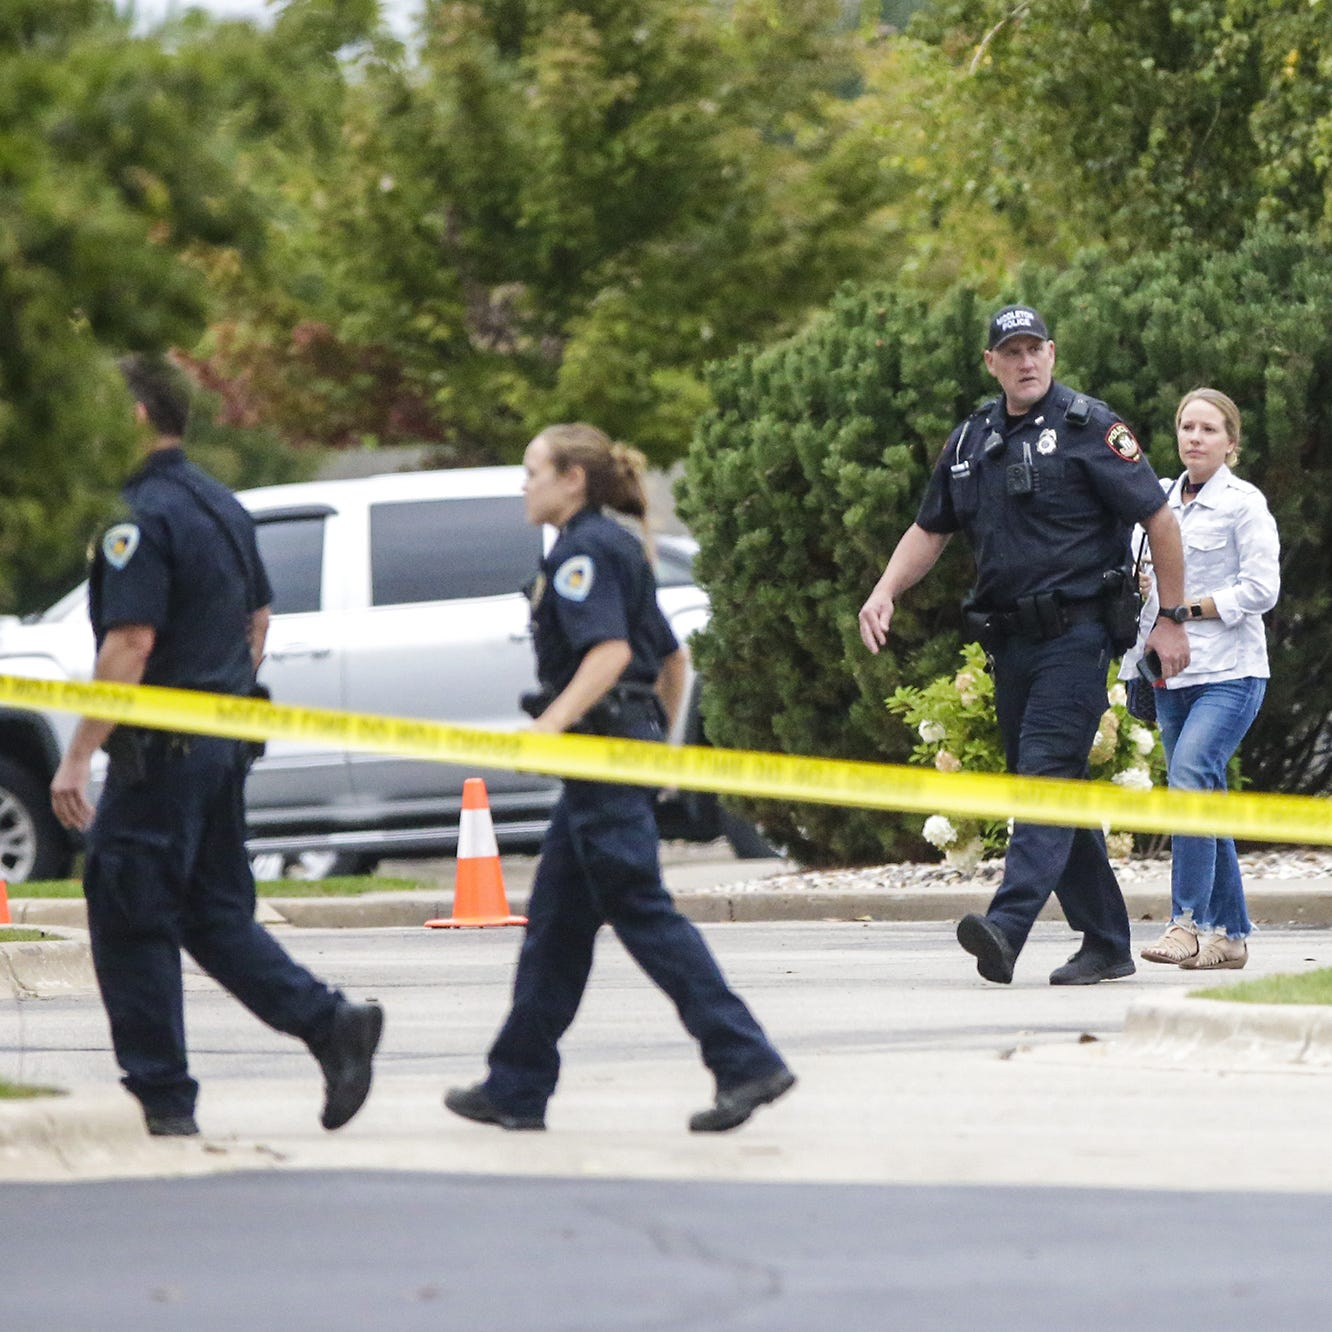 Middleton shooter in 2004 was found with weapons and ammunition, told police co-workers 'were talking bad about him'